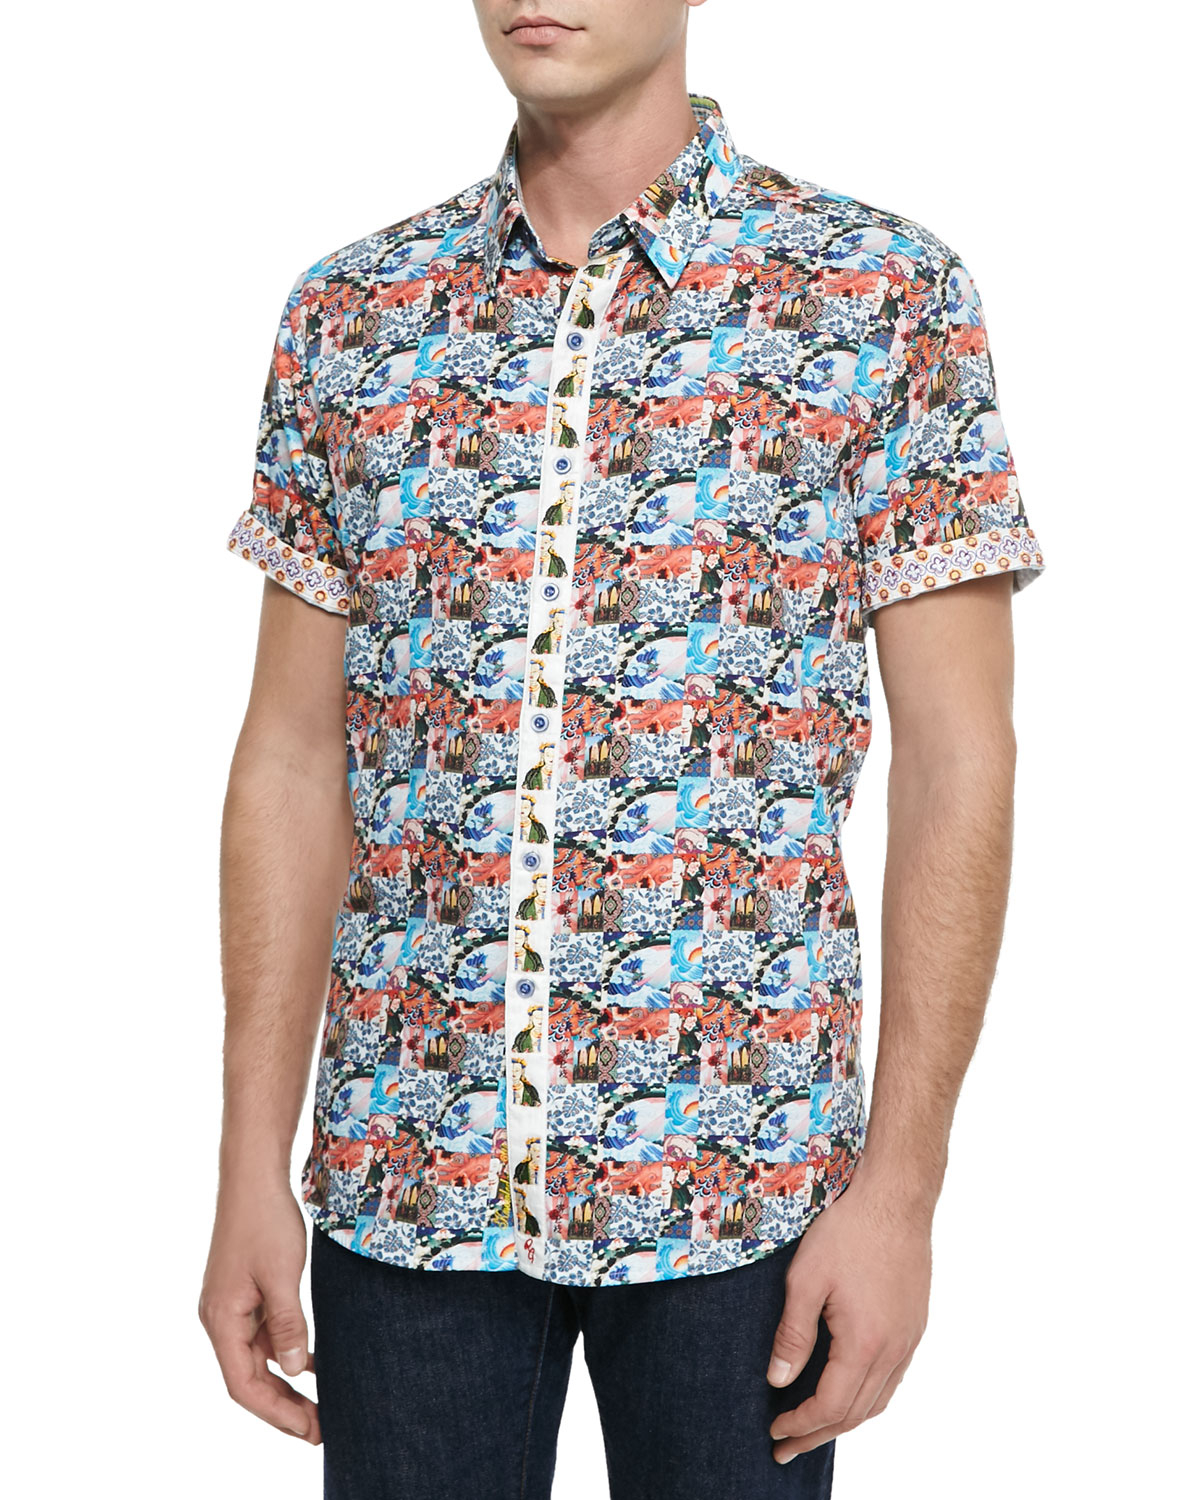 Lyst robert graham wave runner graphic sport shirt in for Where are robert graham shirts made